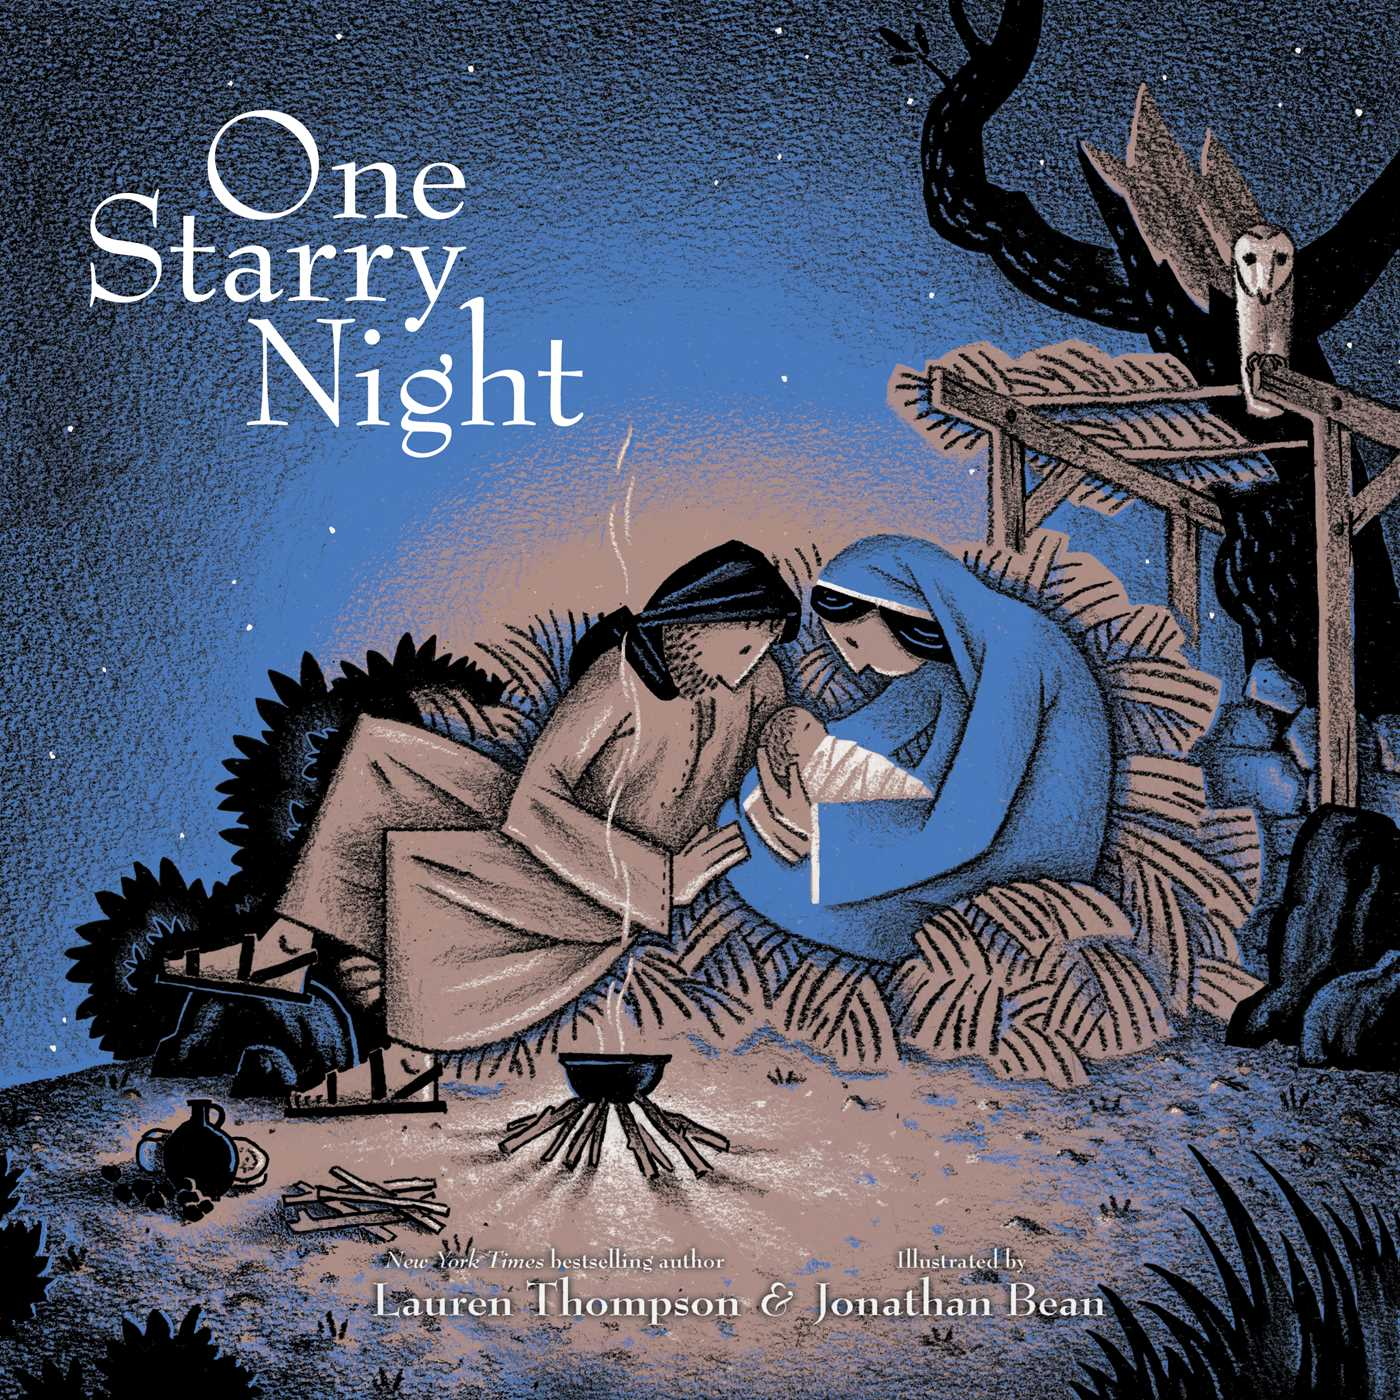 One starry night 9781442449503 hr